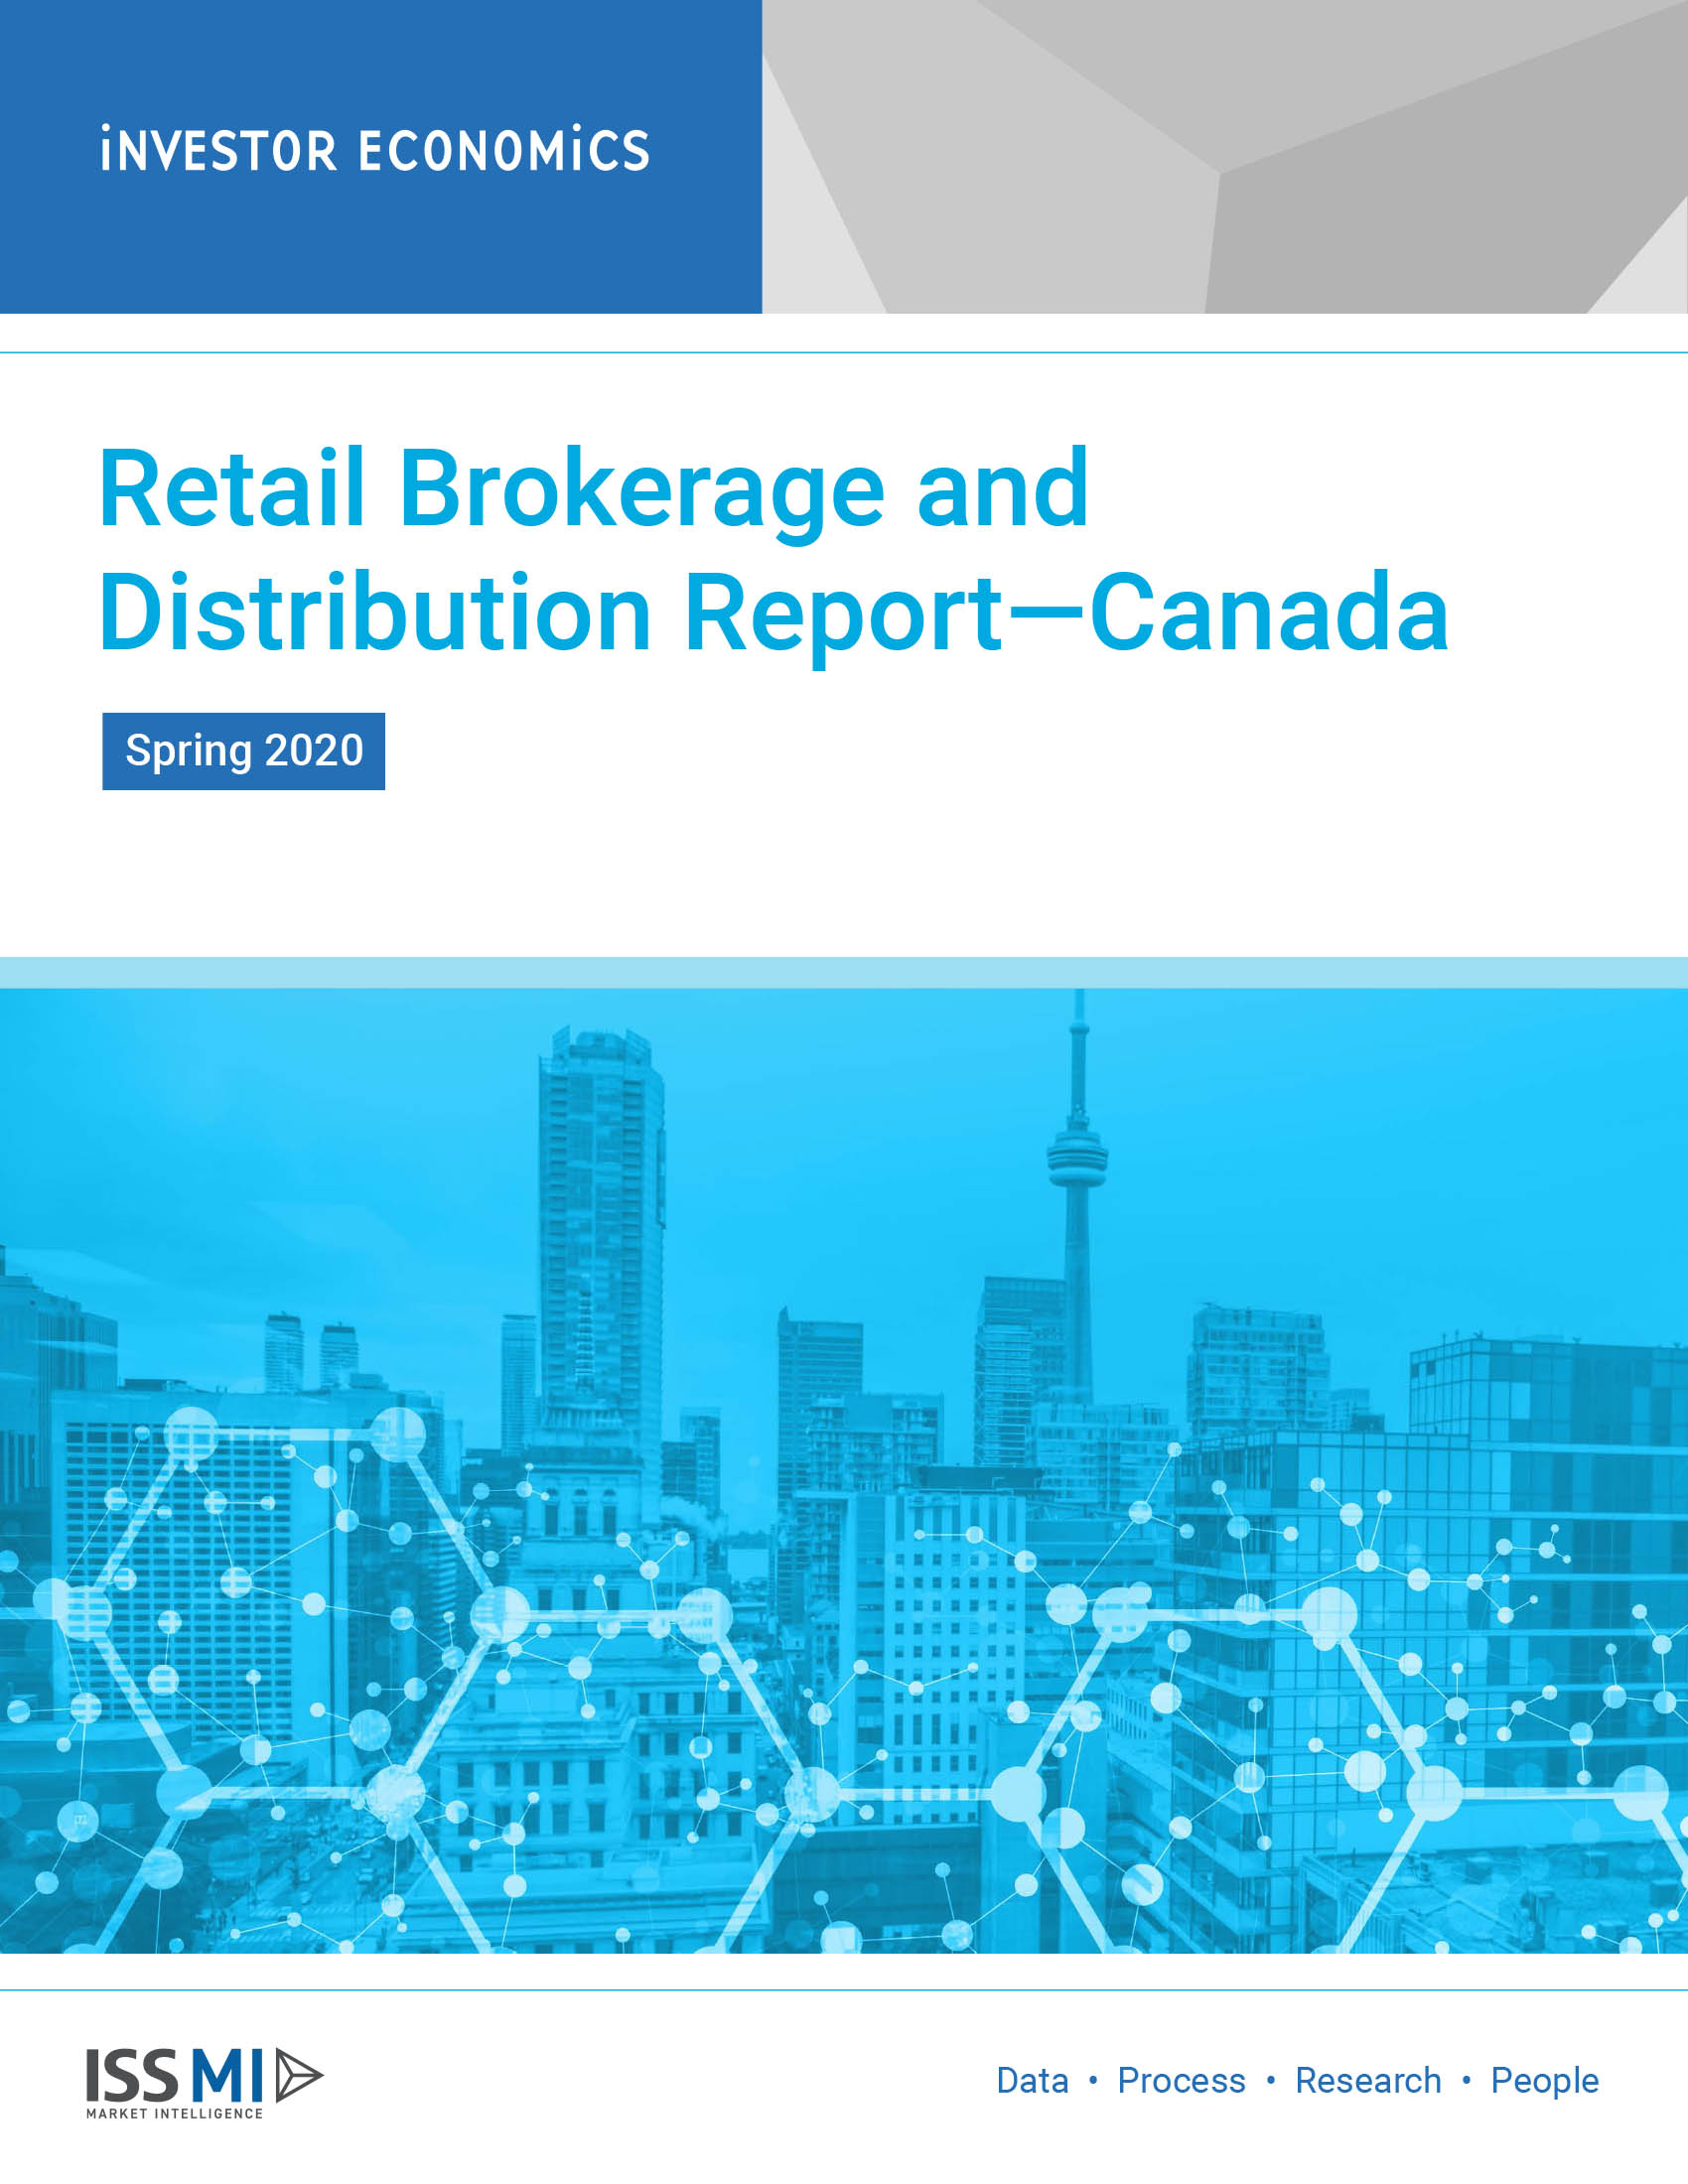 Retail Brokerage and Distribution Report—Canada Spring 2020 Pre-release